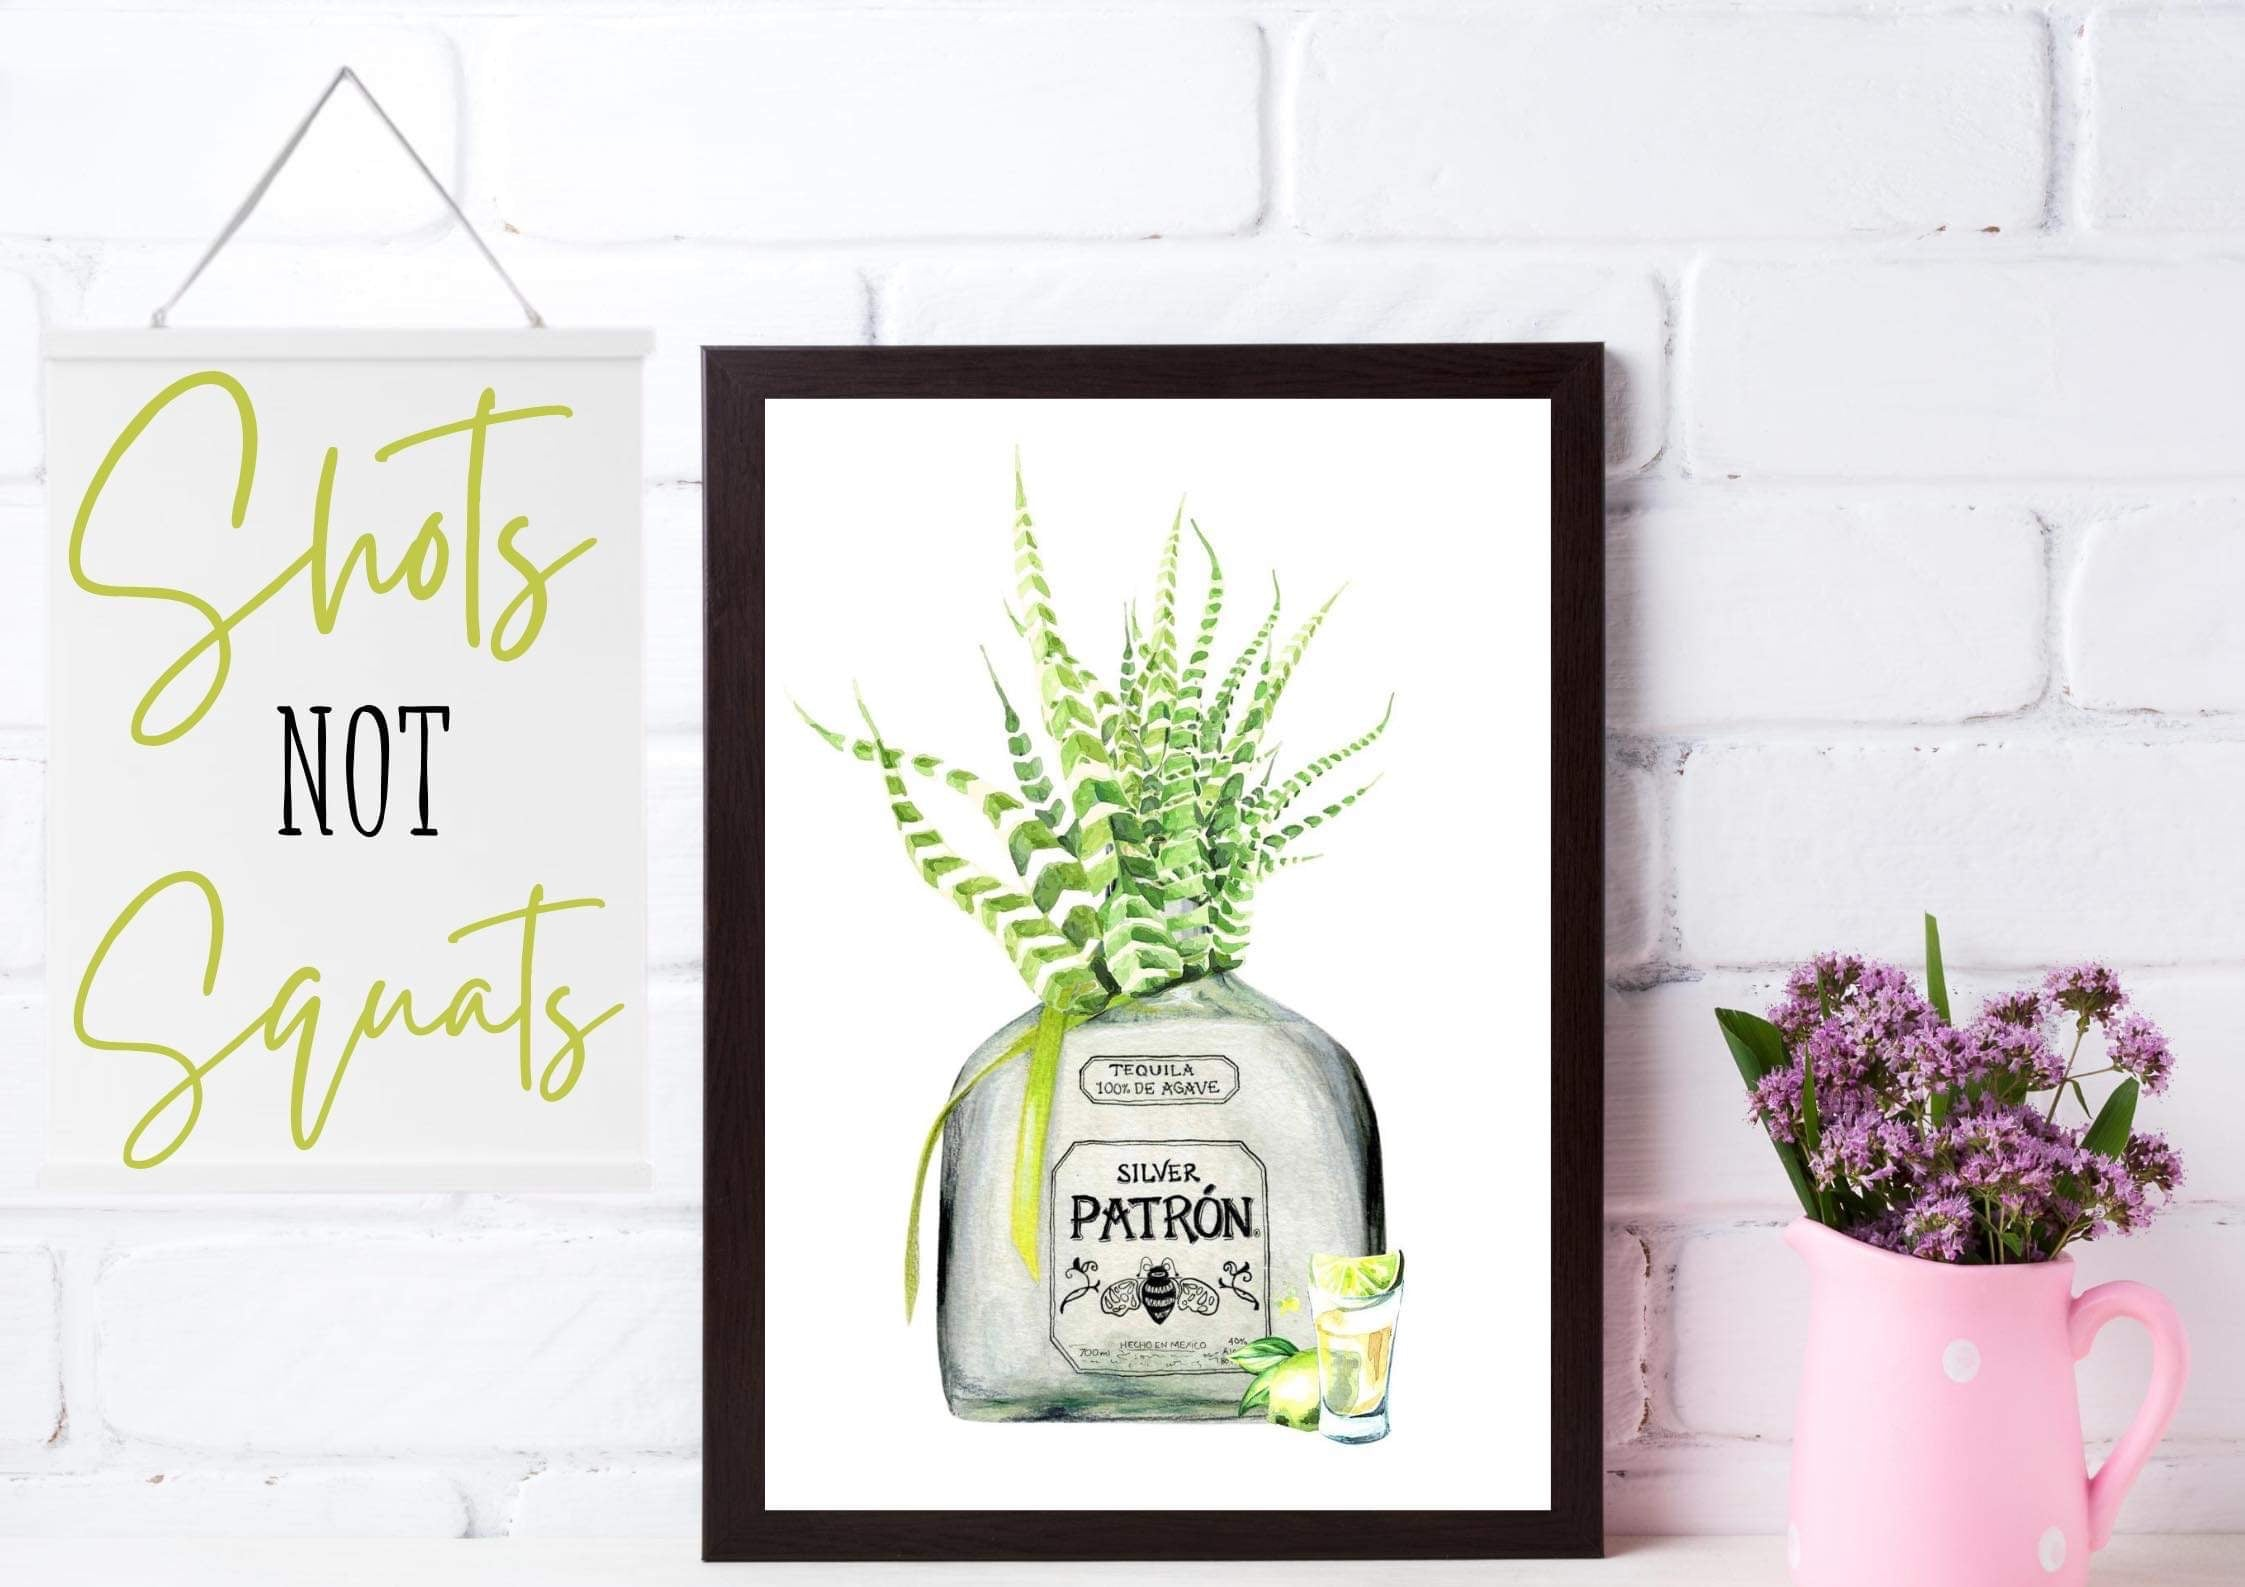 Happy Dais' Patron Tequila Framed Print